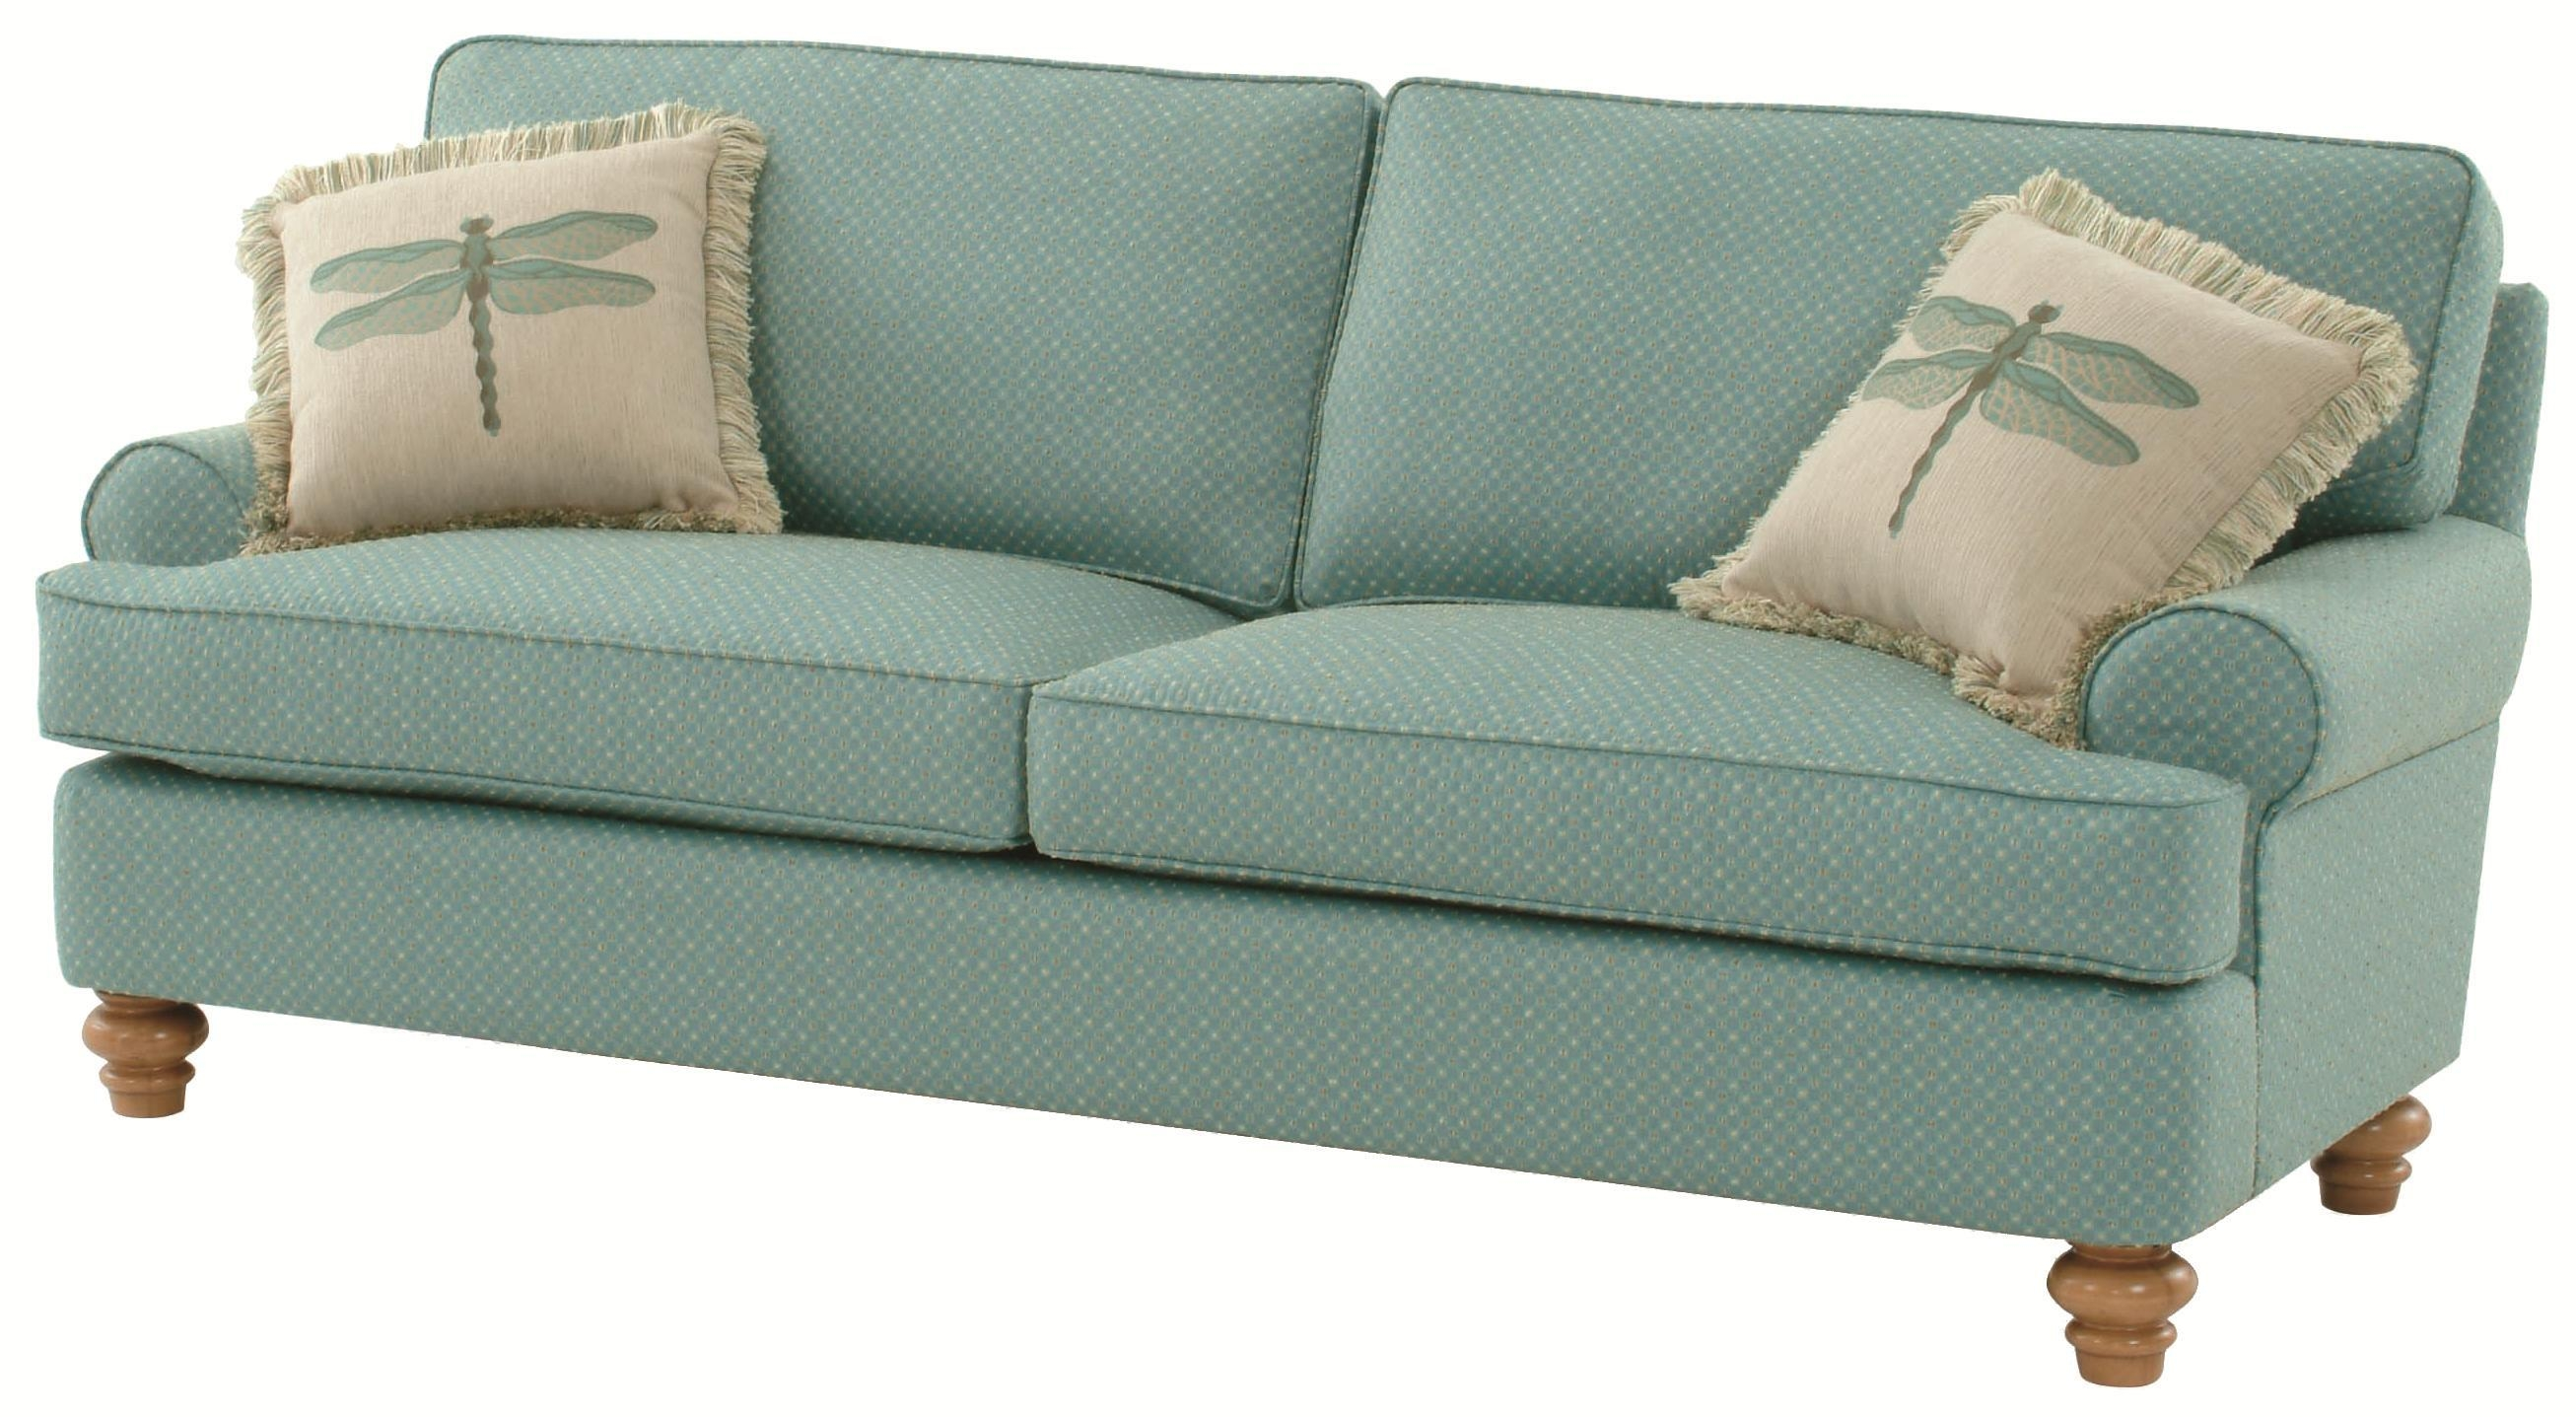 Braxton Culler Sofas & Accent Sofas Store – Dealer Locator With Braxton Culler Sofas (Photo 3 of 20)